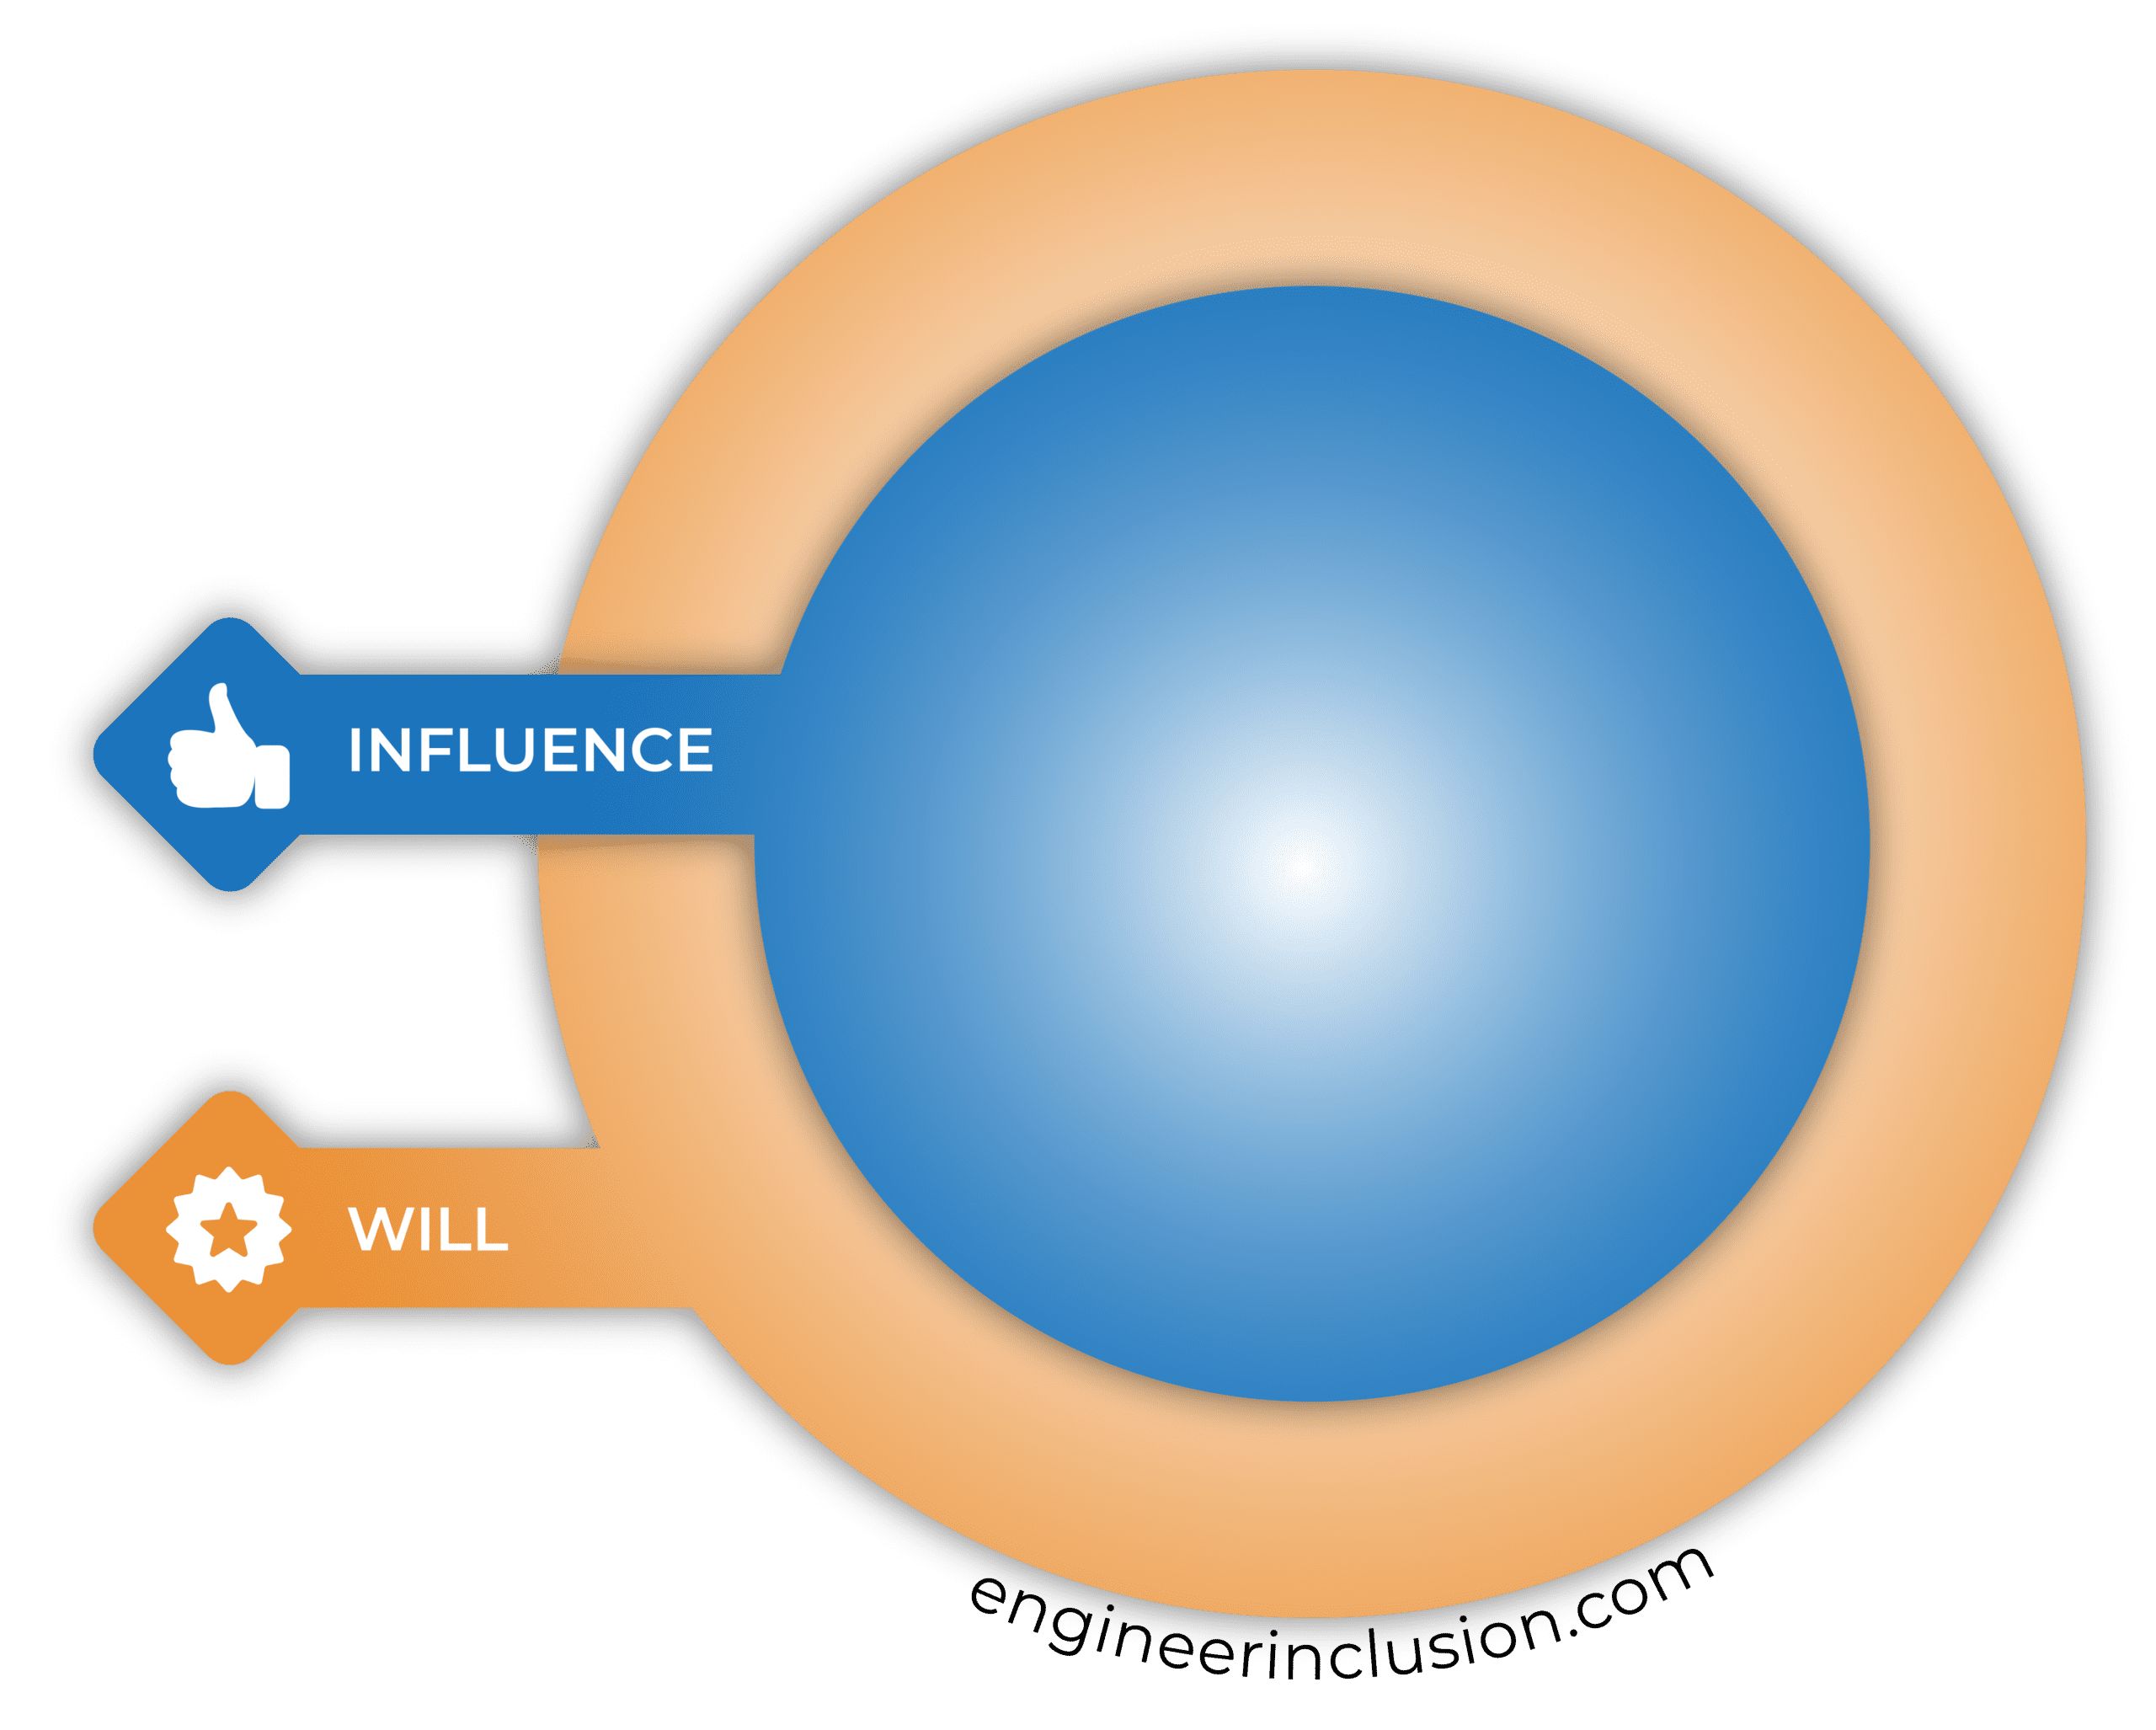 Where does your will intersect your influence?